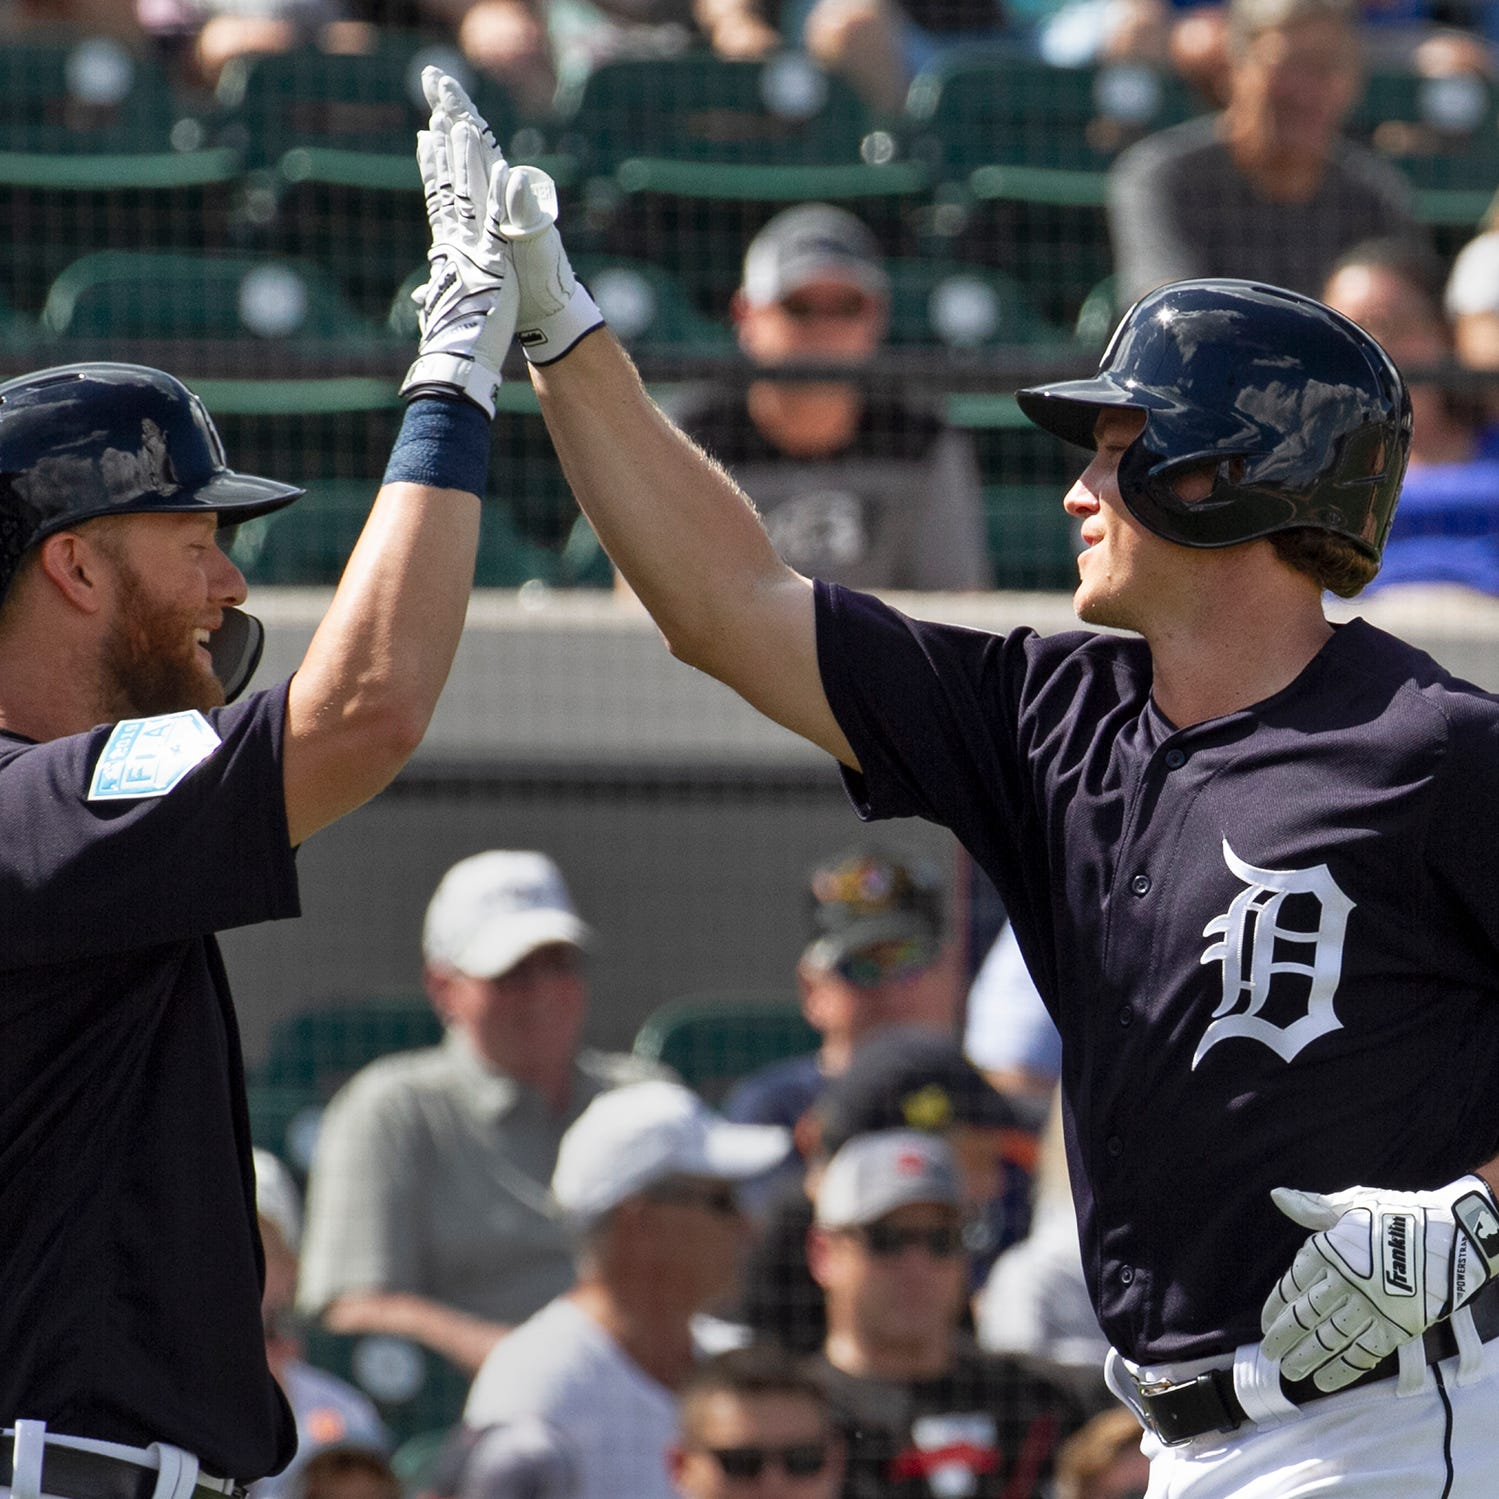 Detroit Tigers exhibition: What we saw from Kyle Funkhouser, Dawel Lugo